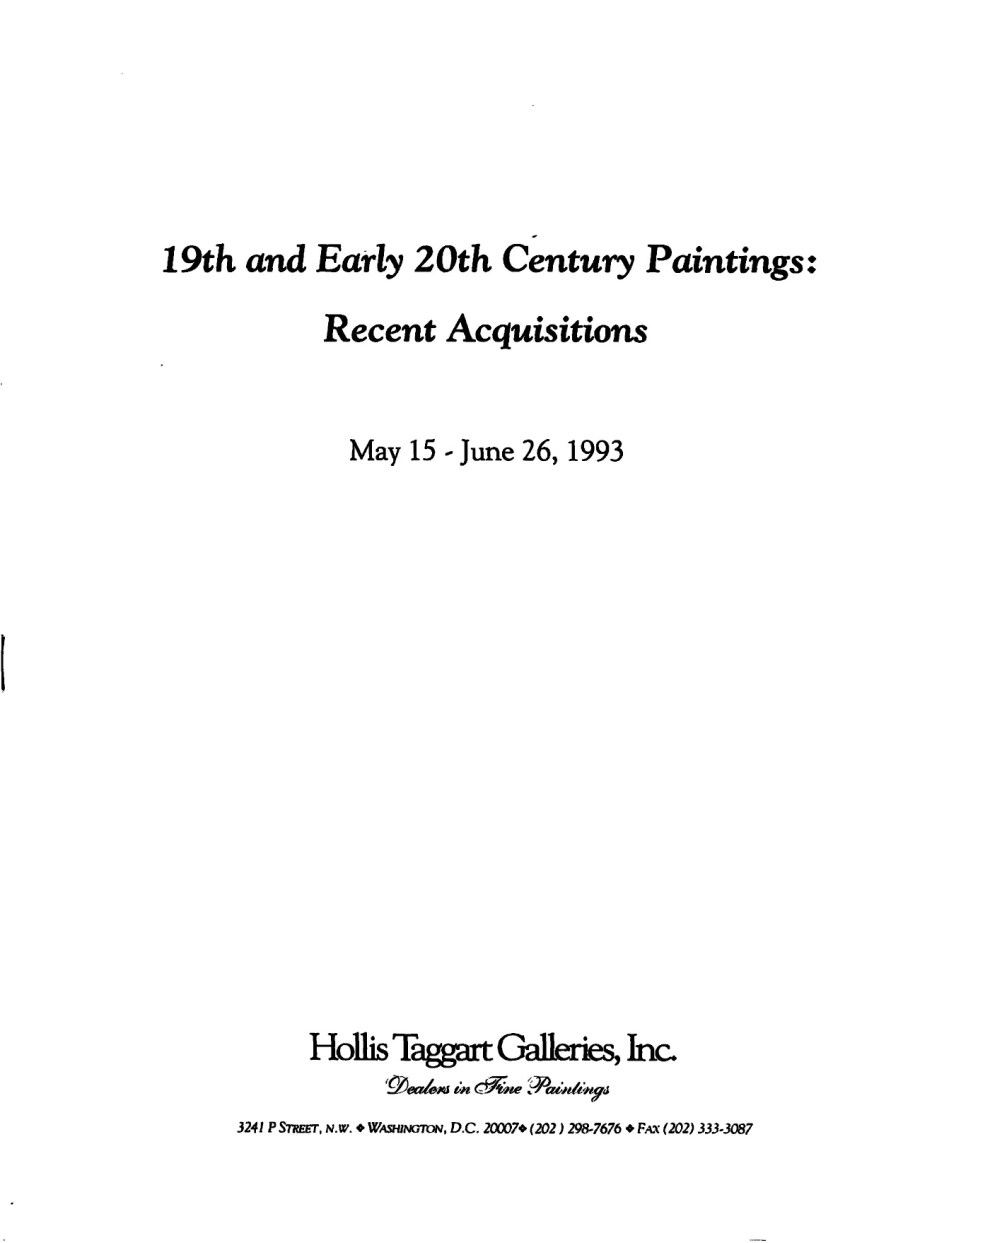 """1993 Hollis Taggart Galleries, Inc., Washington, DC, """"19th and 20th Century Paintings: Recent Acquisitions"""", May 15 – June 26"""